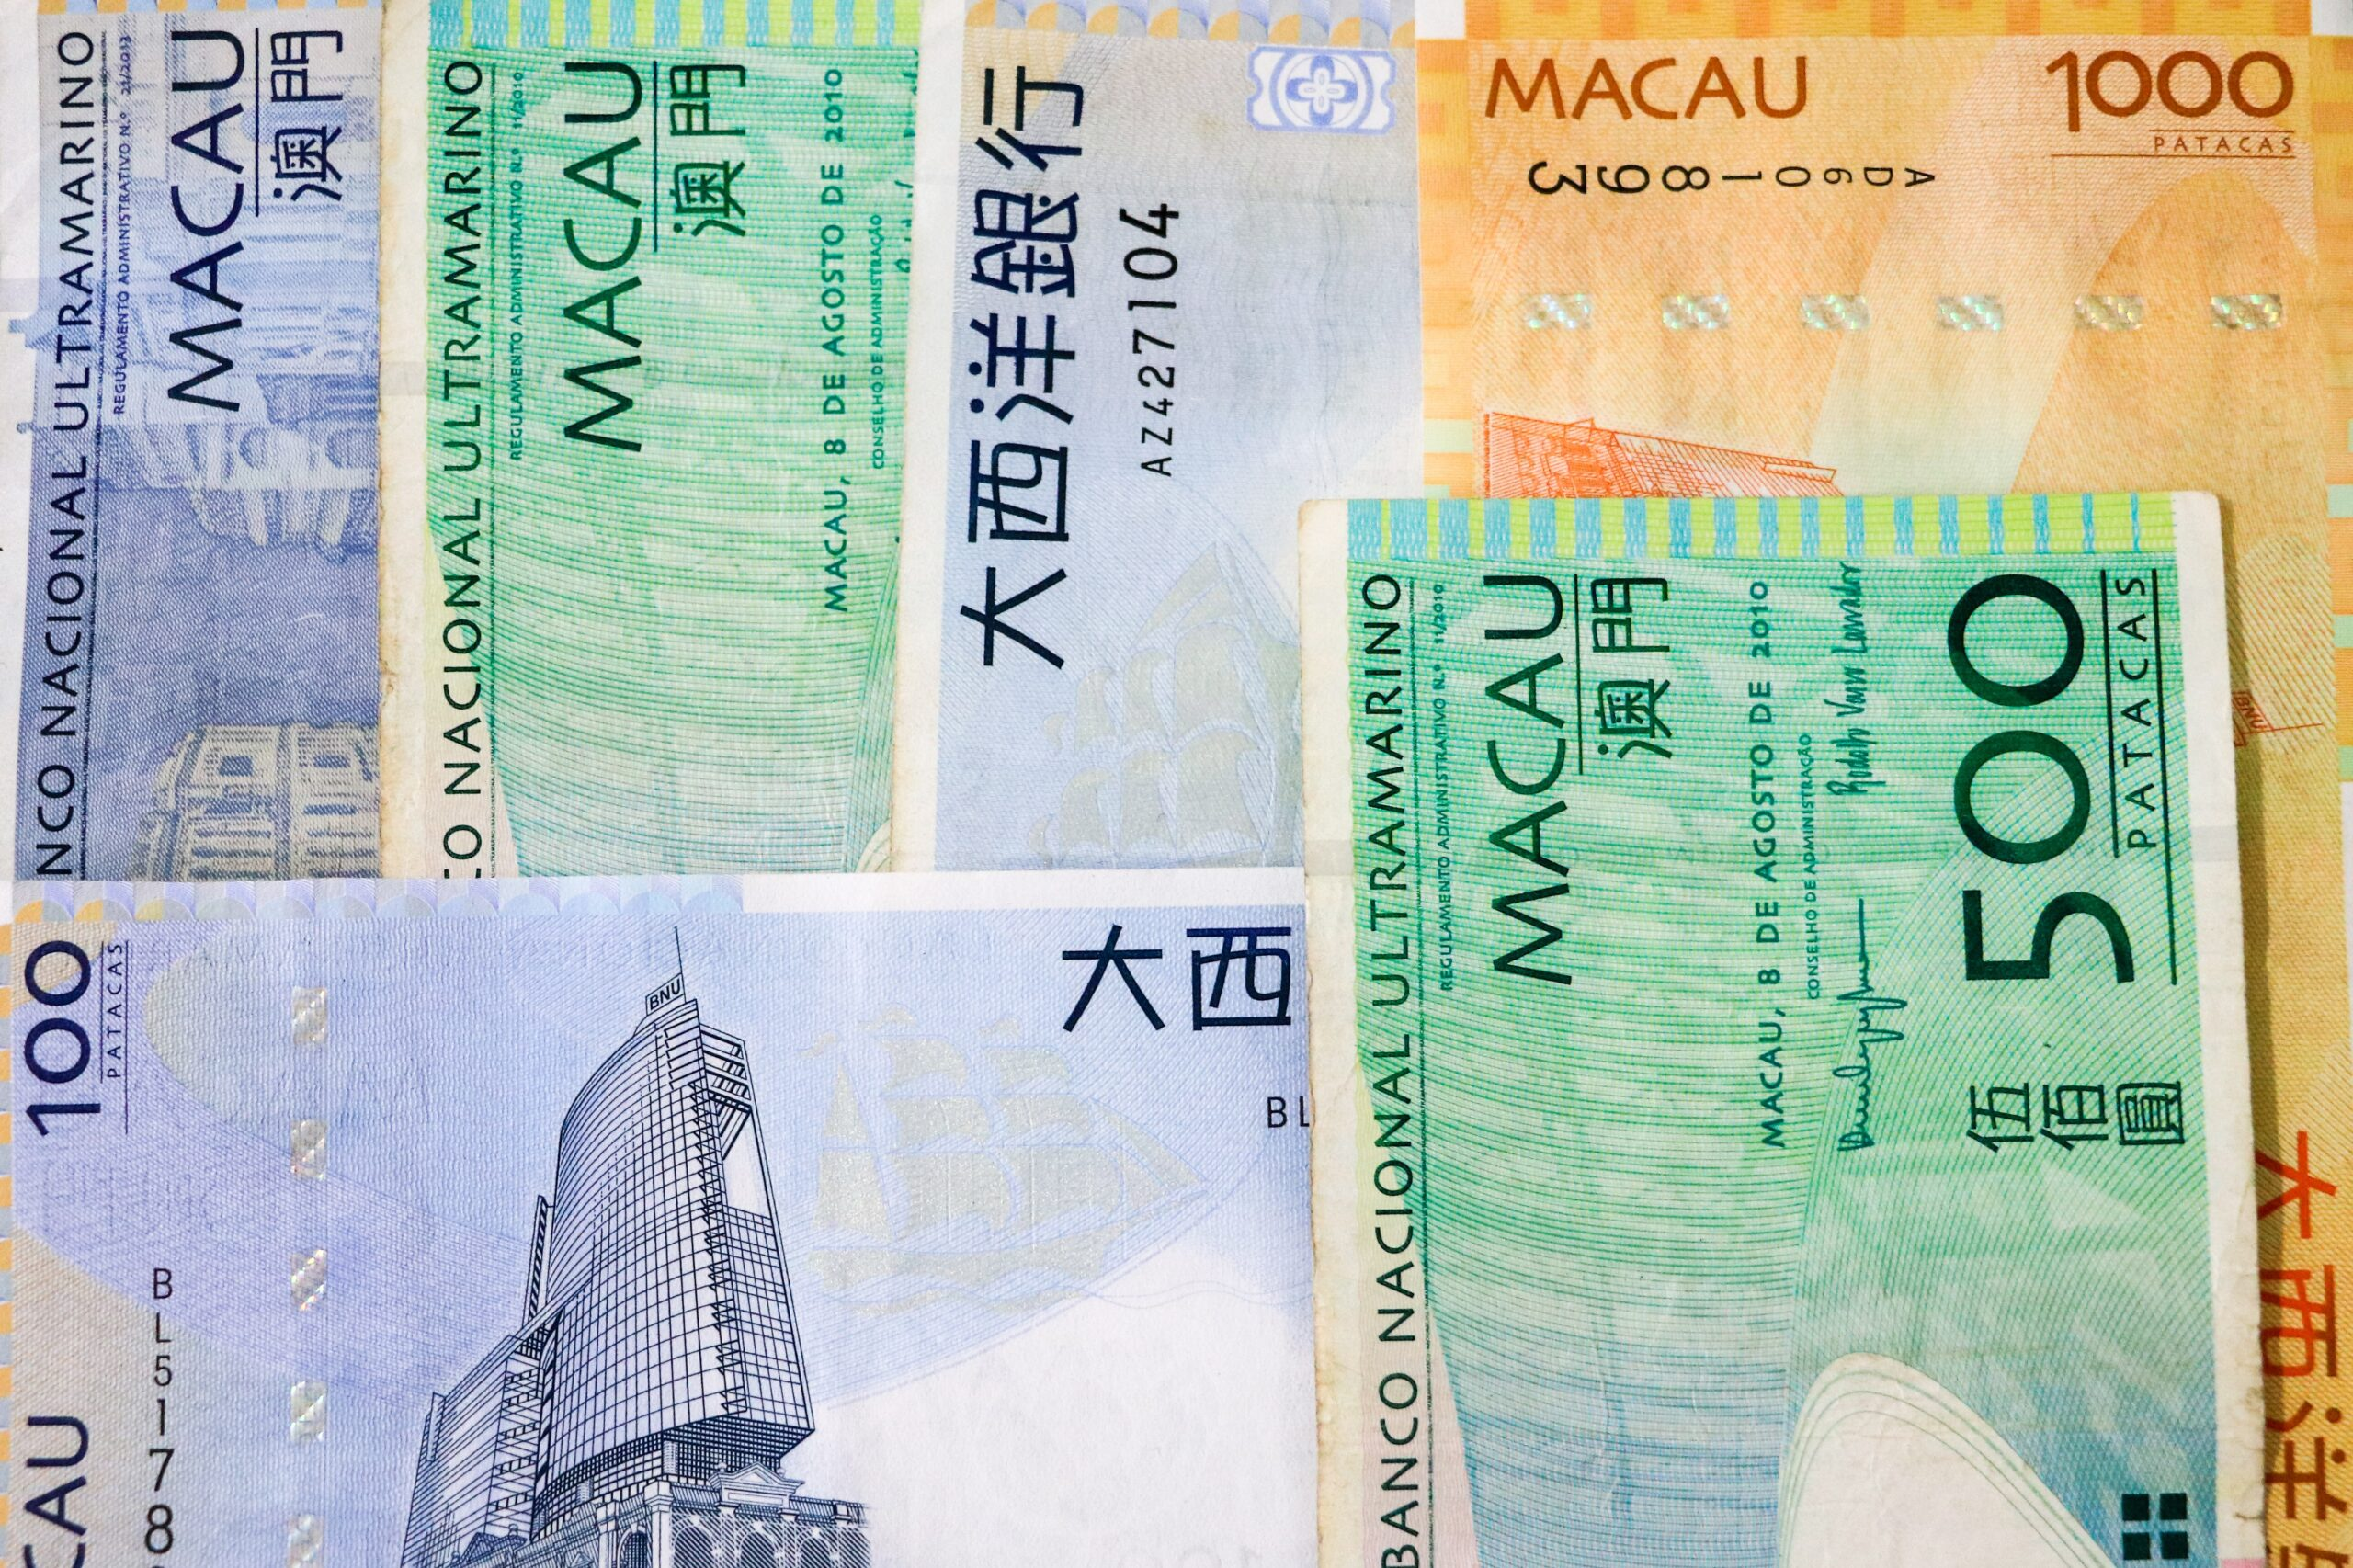 macau photo agency gojqyom5wey unsplash scaled - Should you take a portfolio of Chinese stocks?